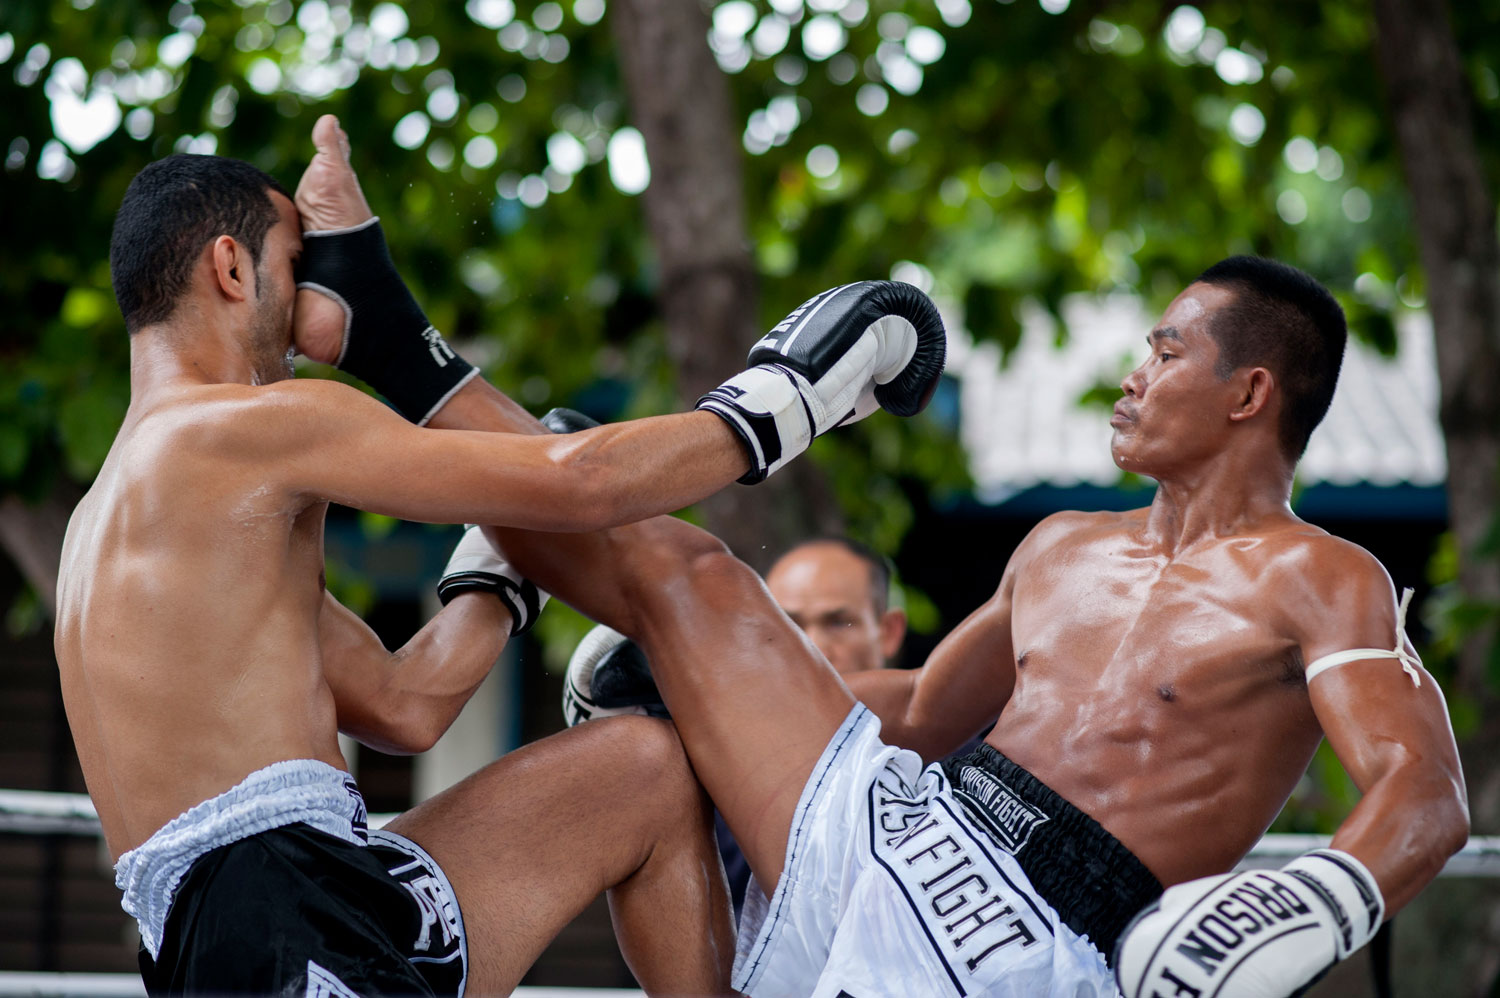 An inmate kicks a foreigner fighter during a Muay Thai fight at Klong Pai prison on July 12, 2014 in Nakhon Ratchasima, Thailand.